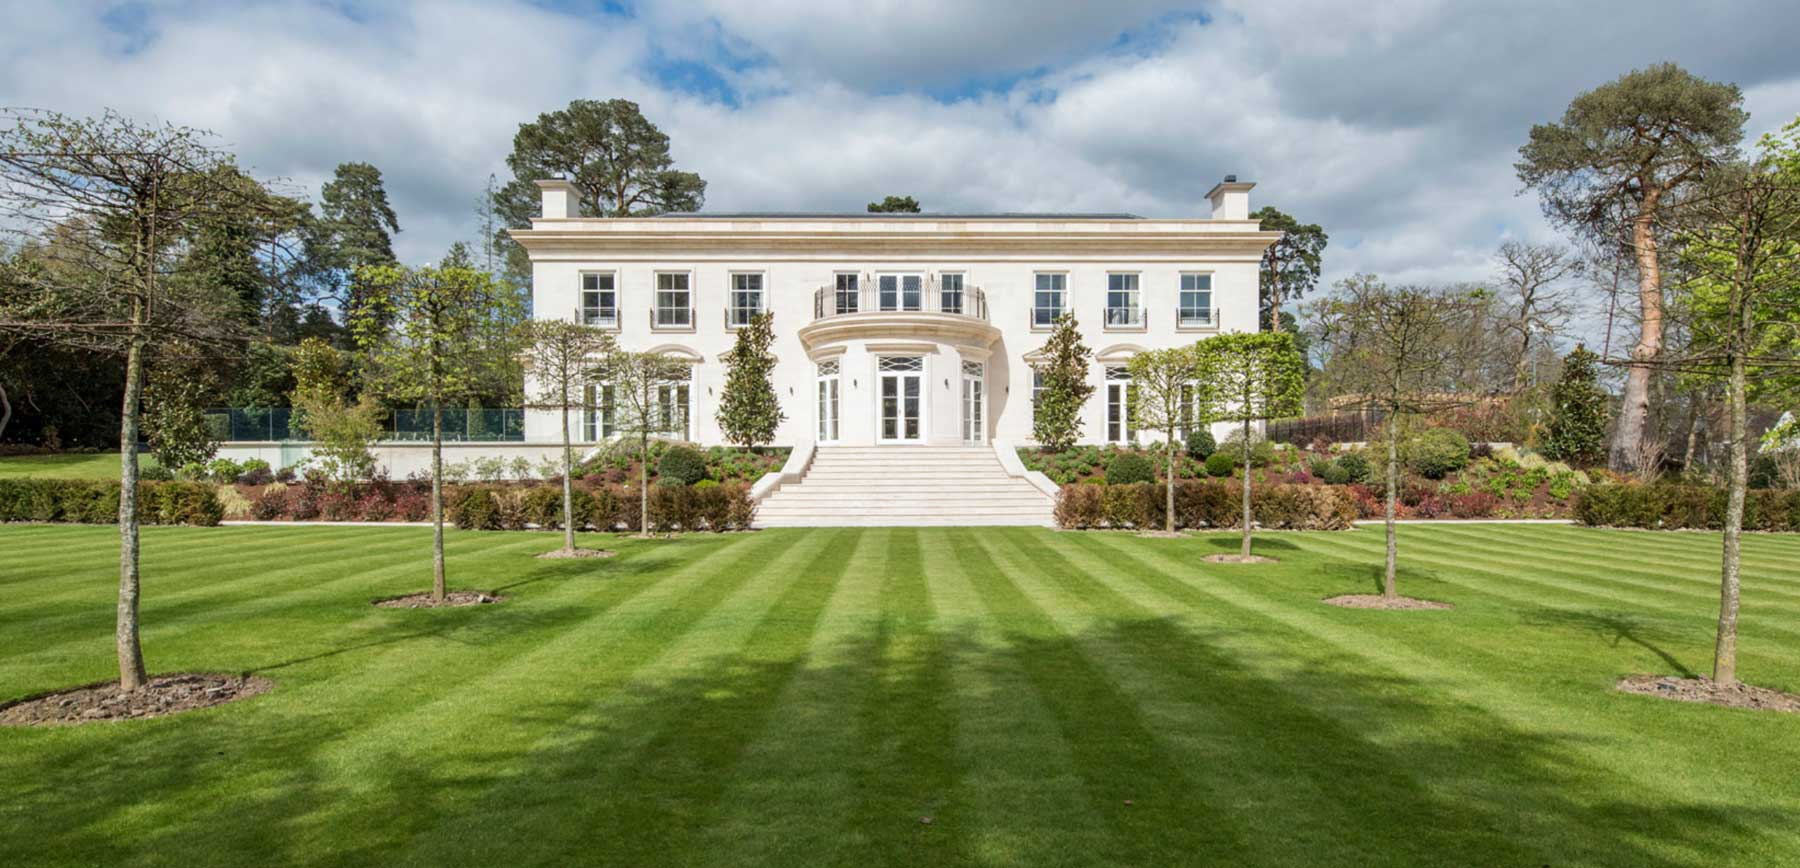 hurstbourne-wentworth-estate-our-work-private-clients-ascot-design-view1.jpg